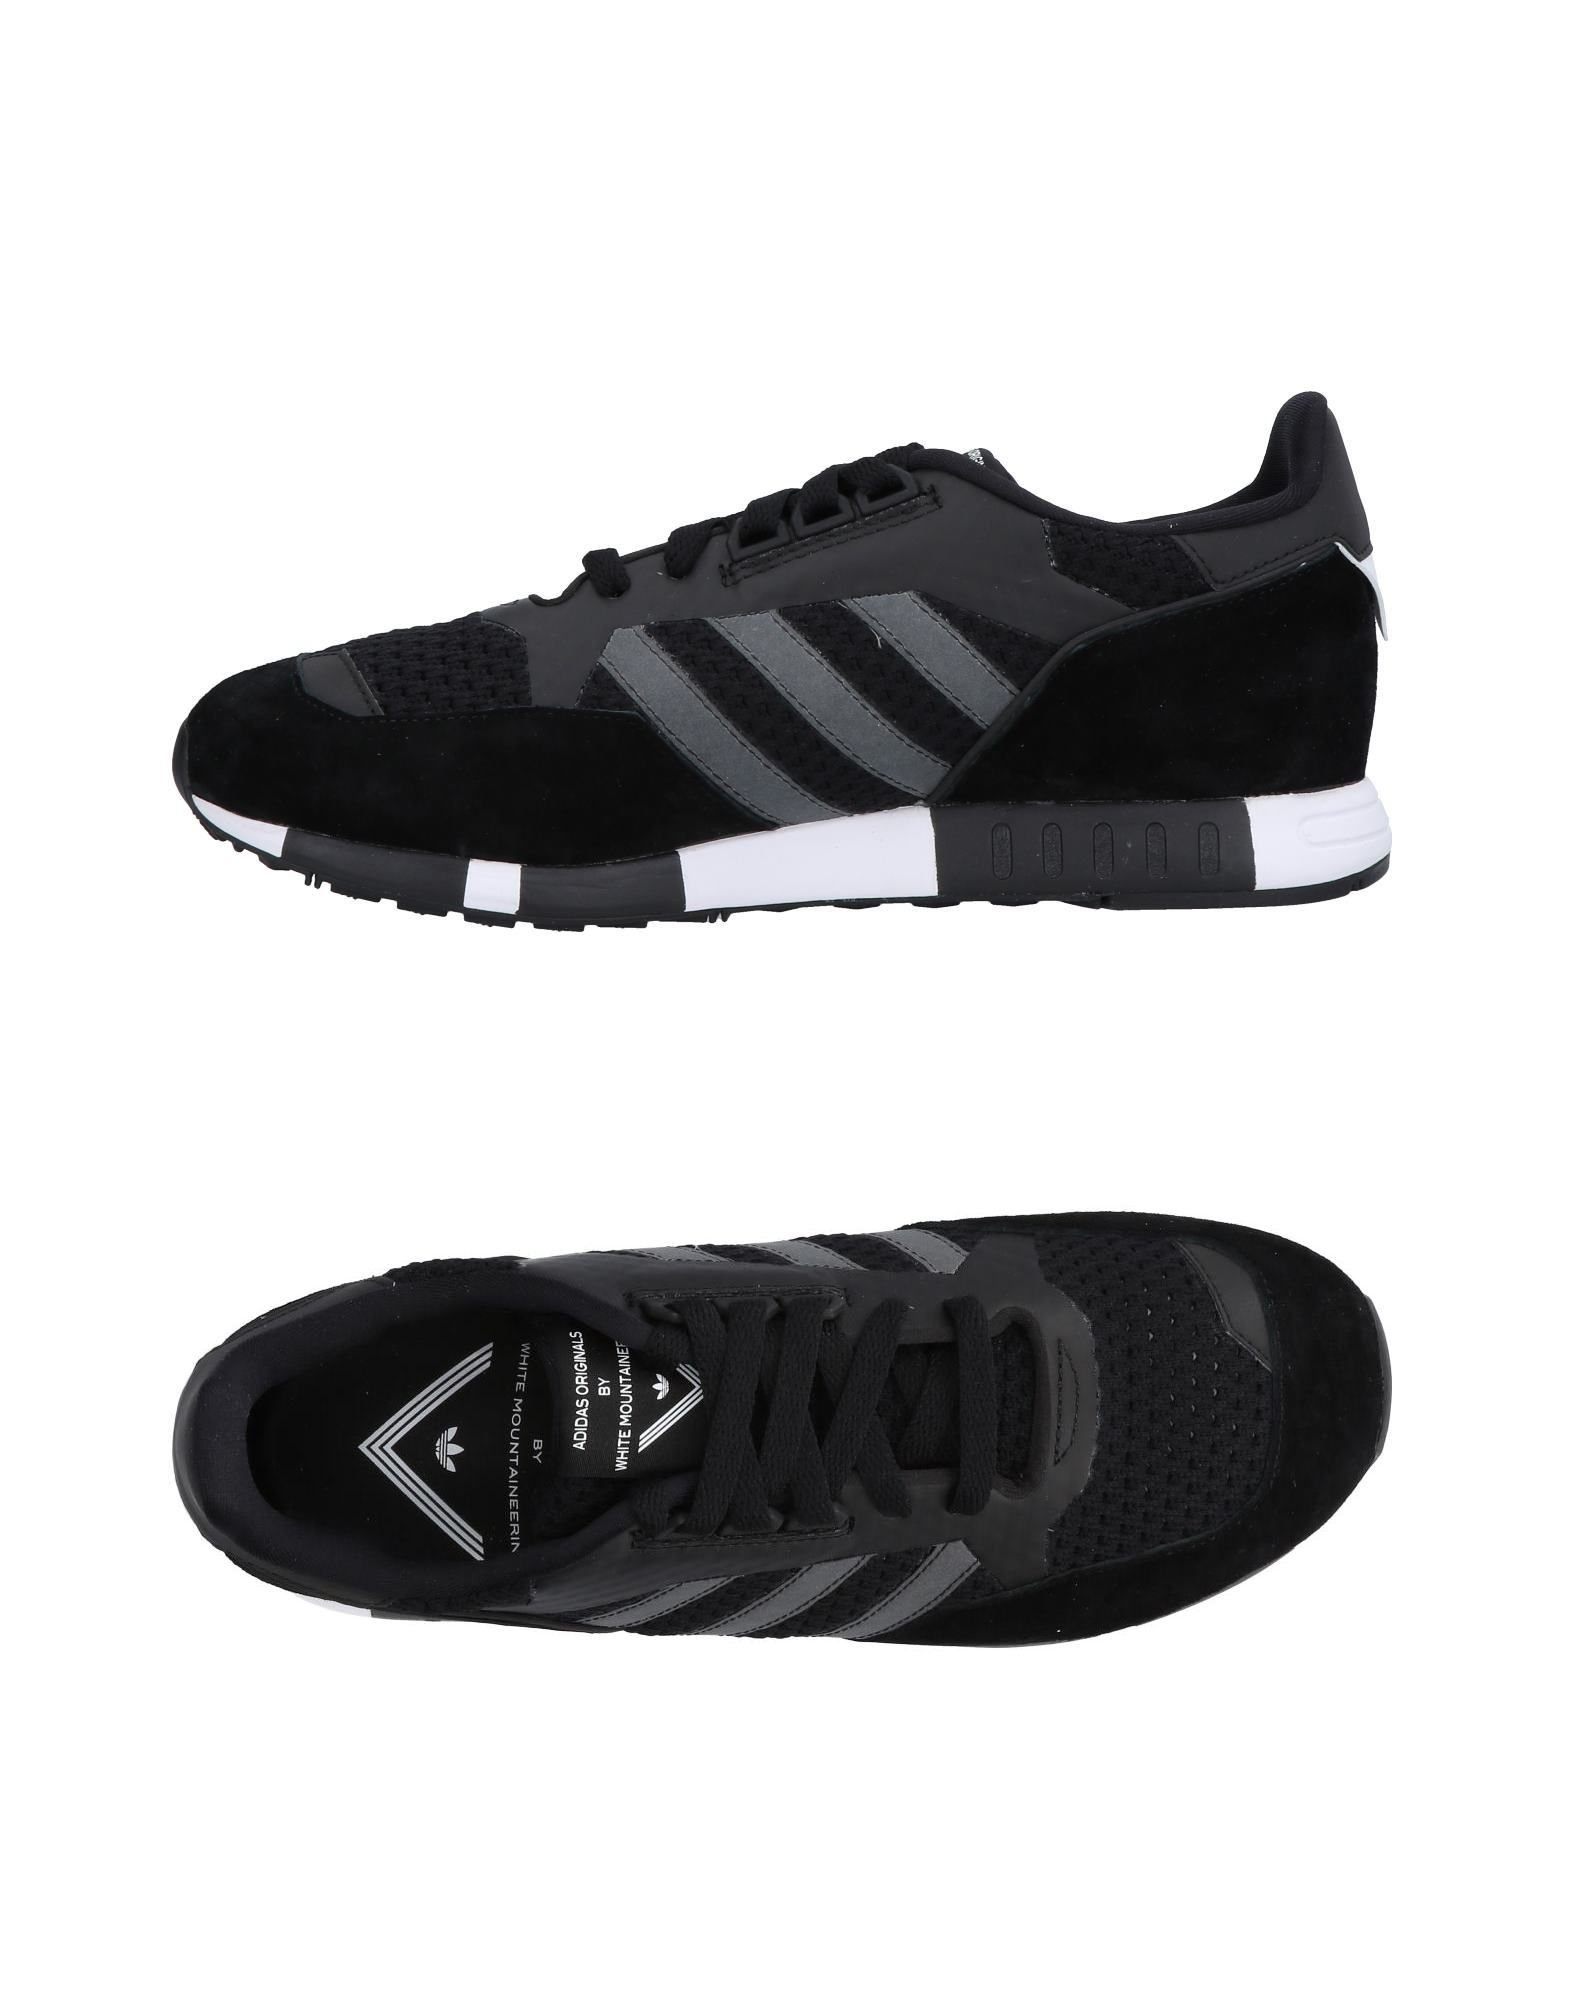 ADIDAS X WHITE MOUNTAINEERING Sneakers in Black